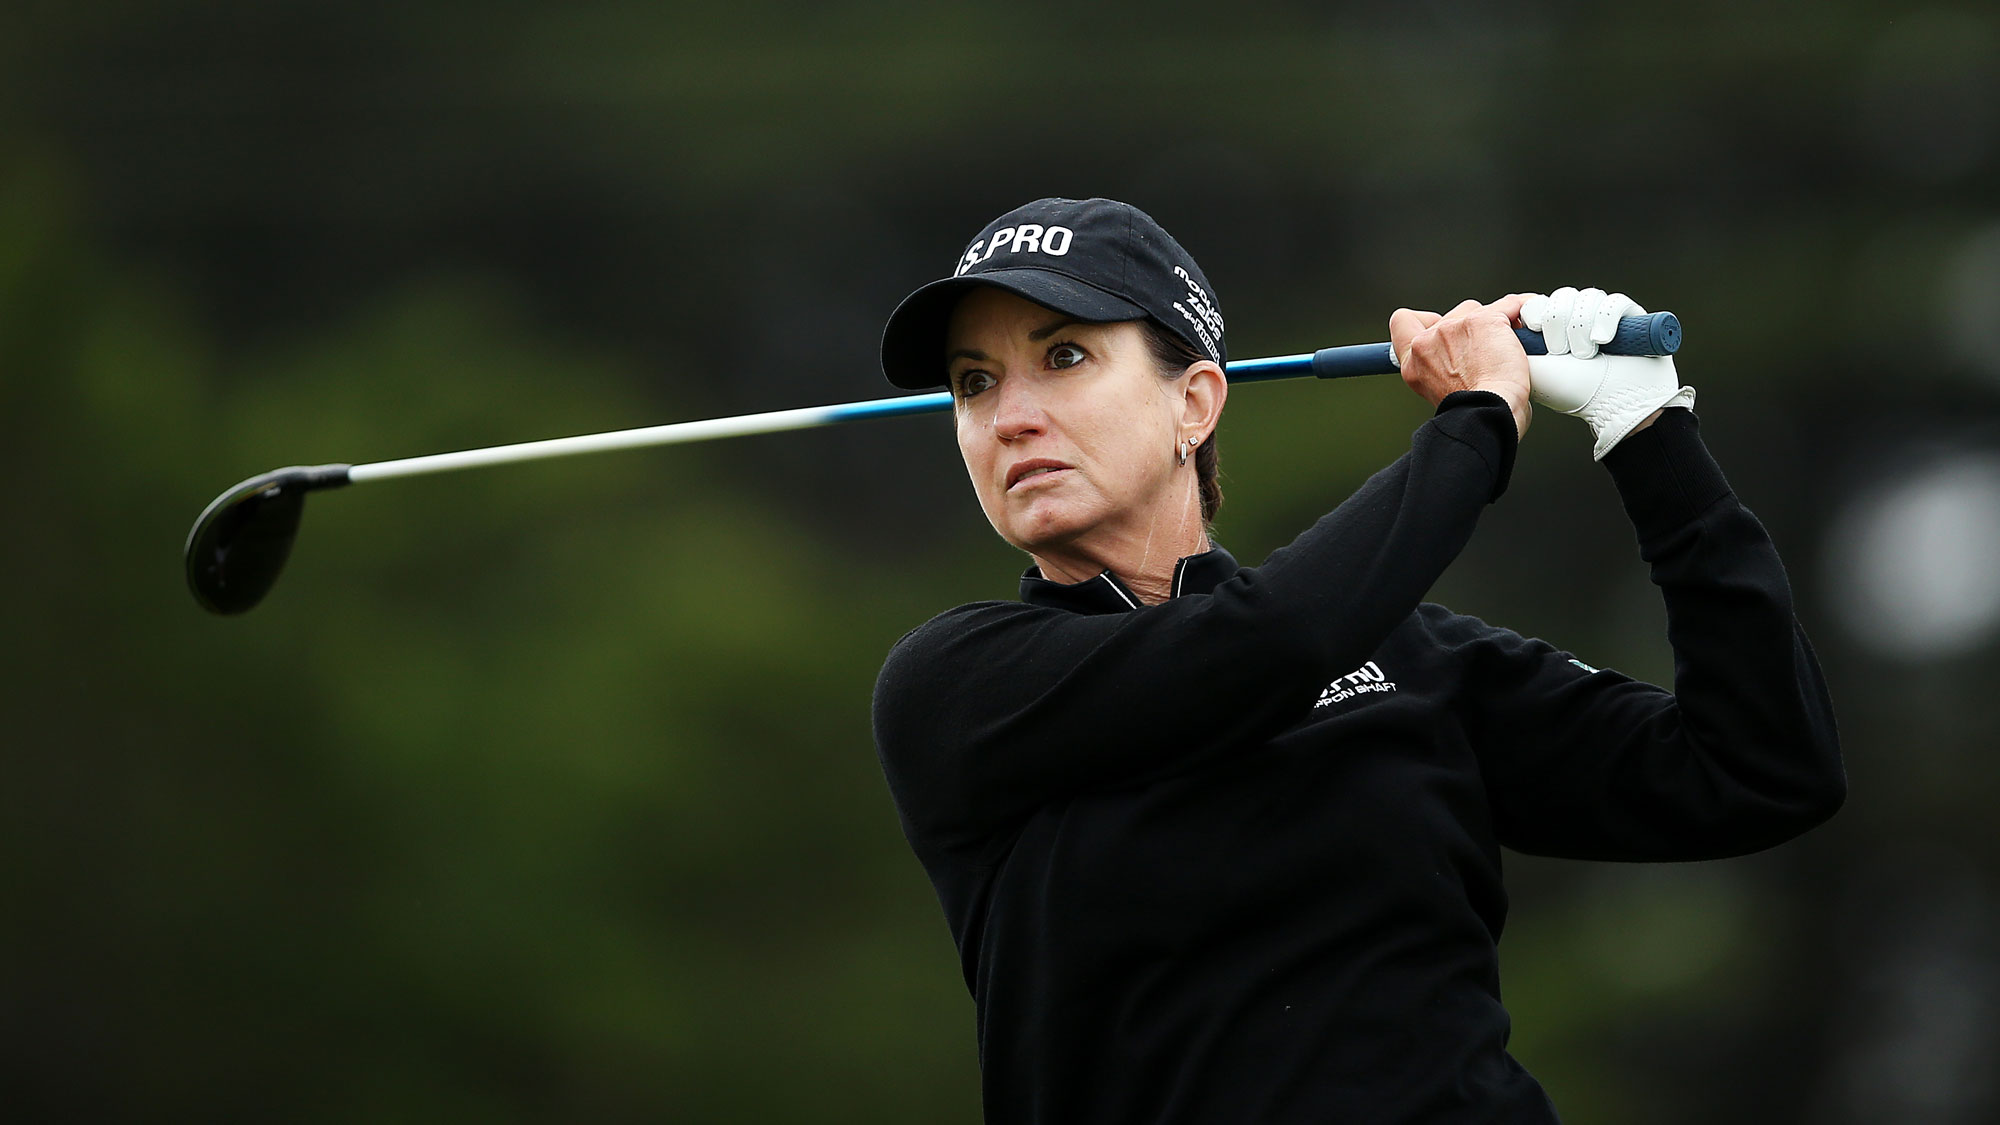 Karrie Webb tees off during Round 1 of the ISPS Handa Vic Open